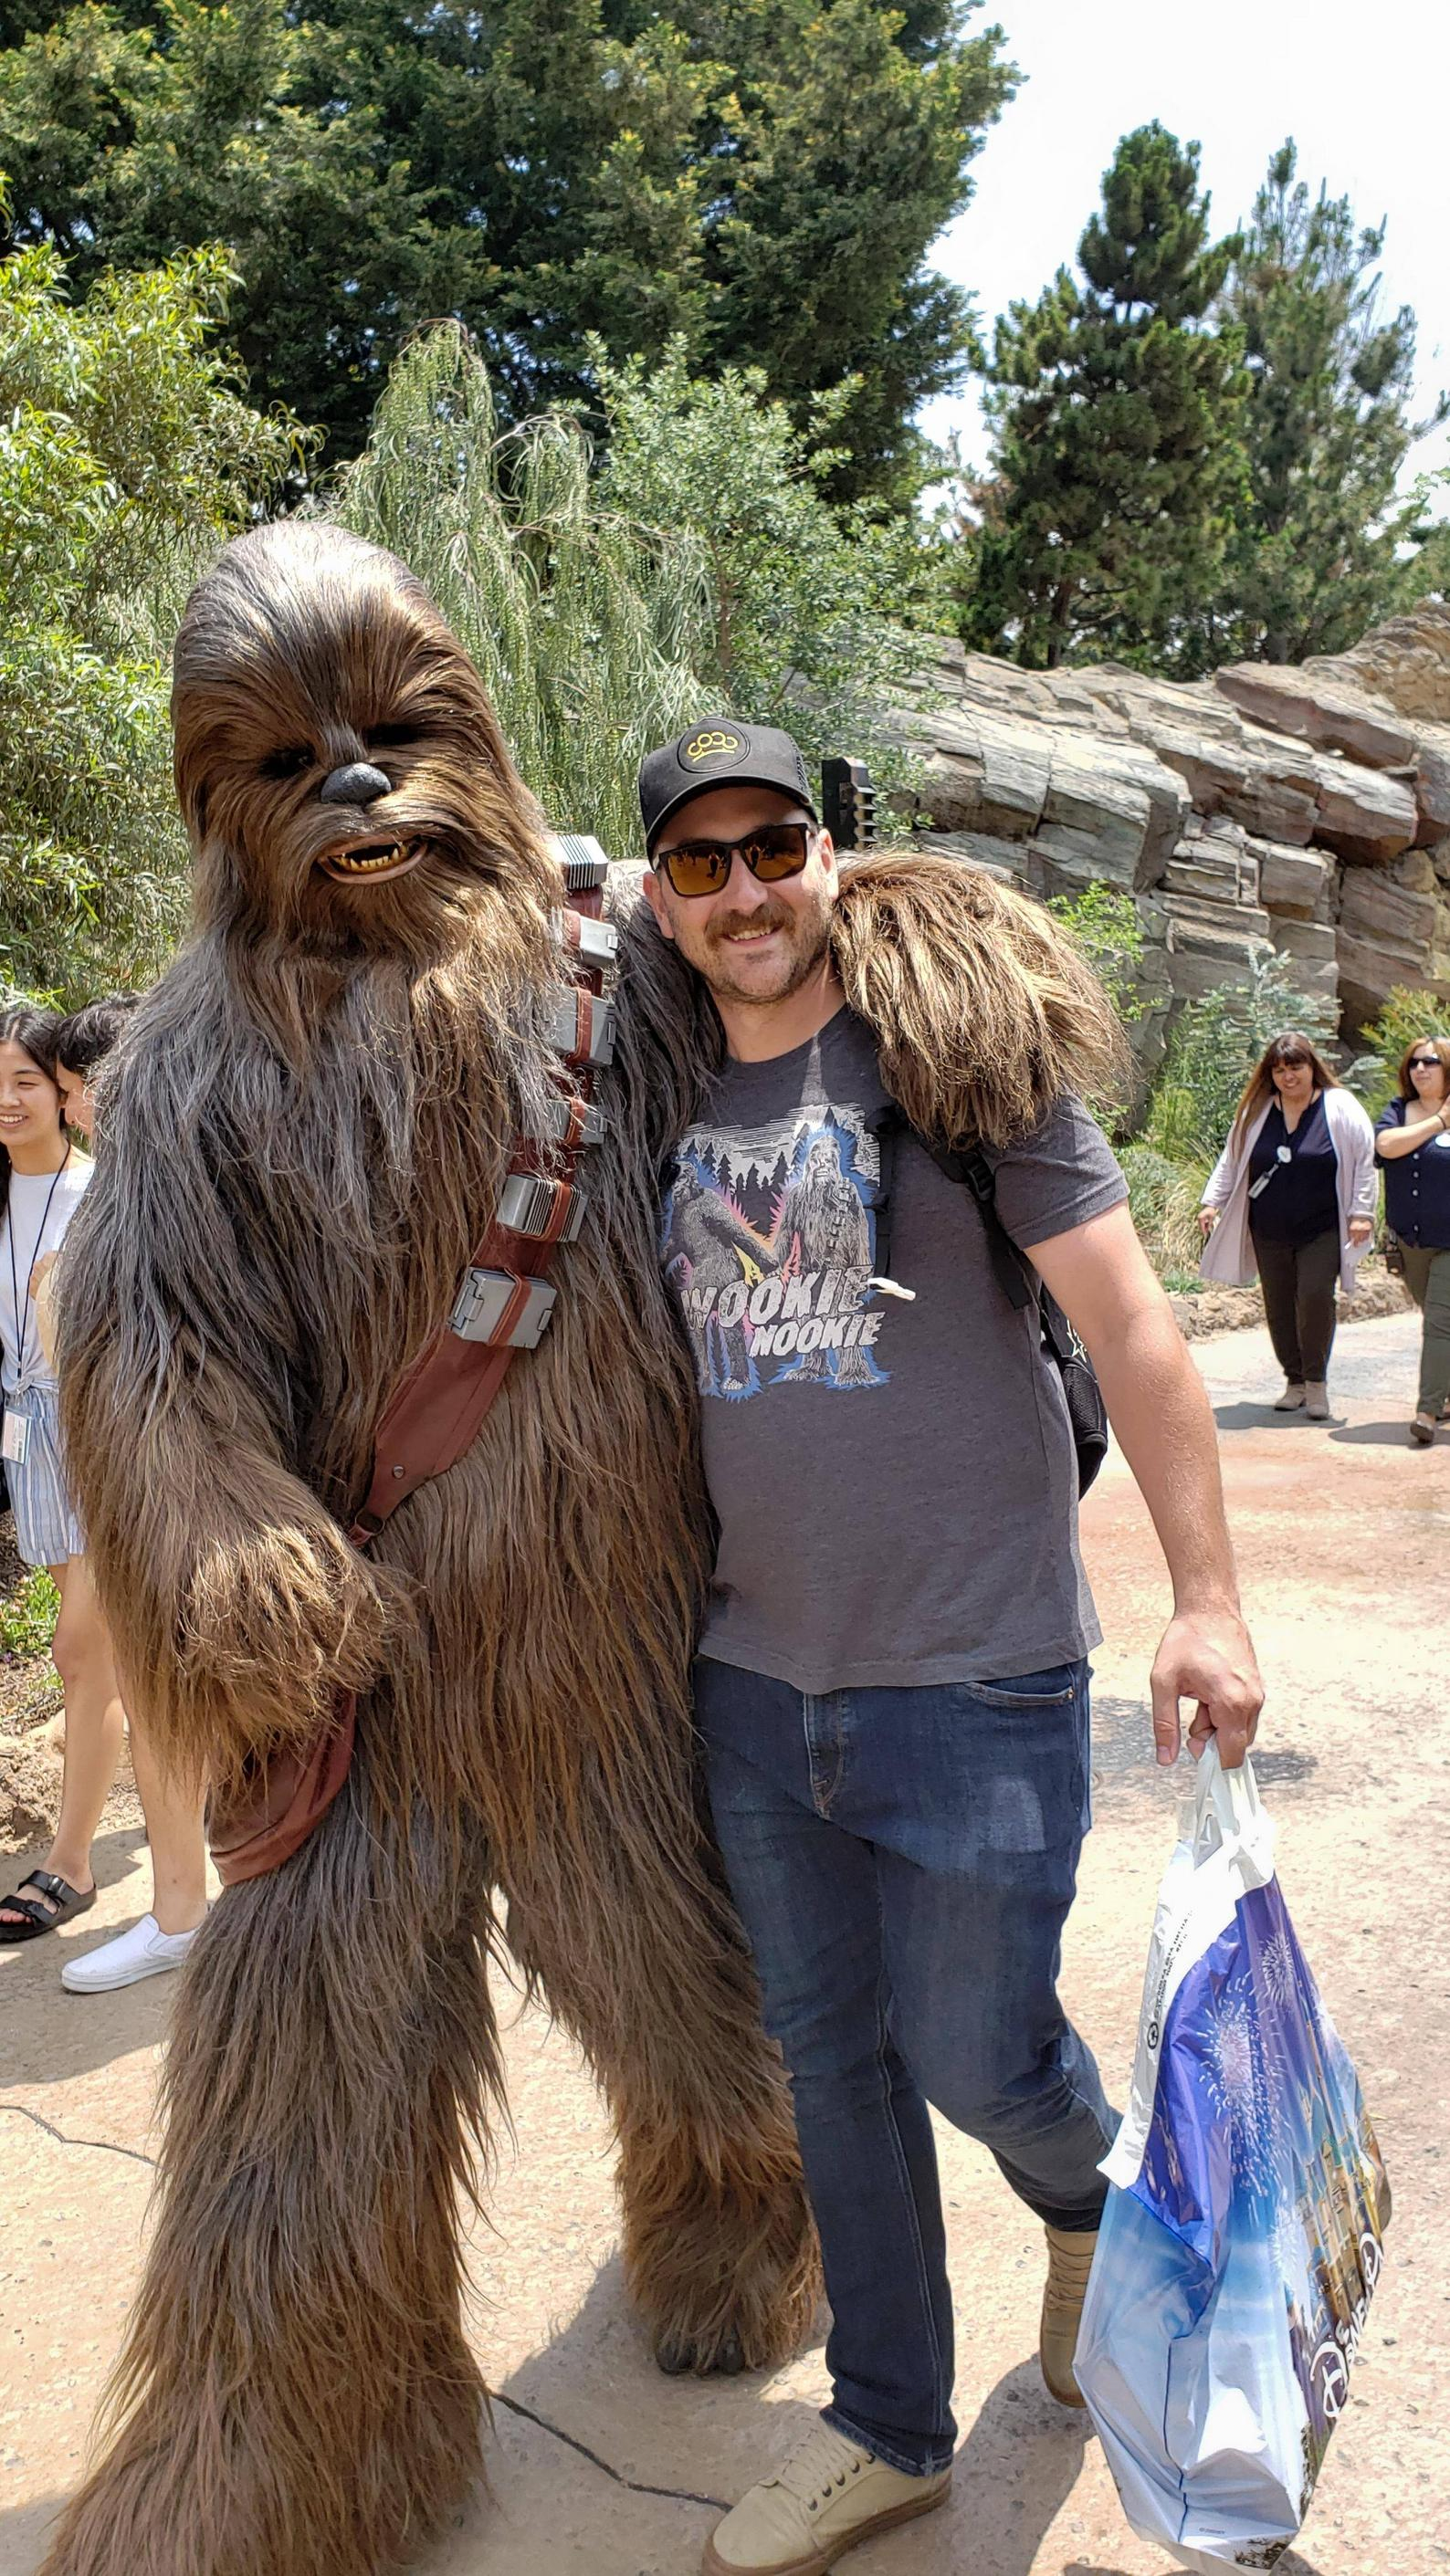 Has anyone else been to Galaxy\'s Edge in Disneyland?